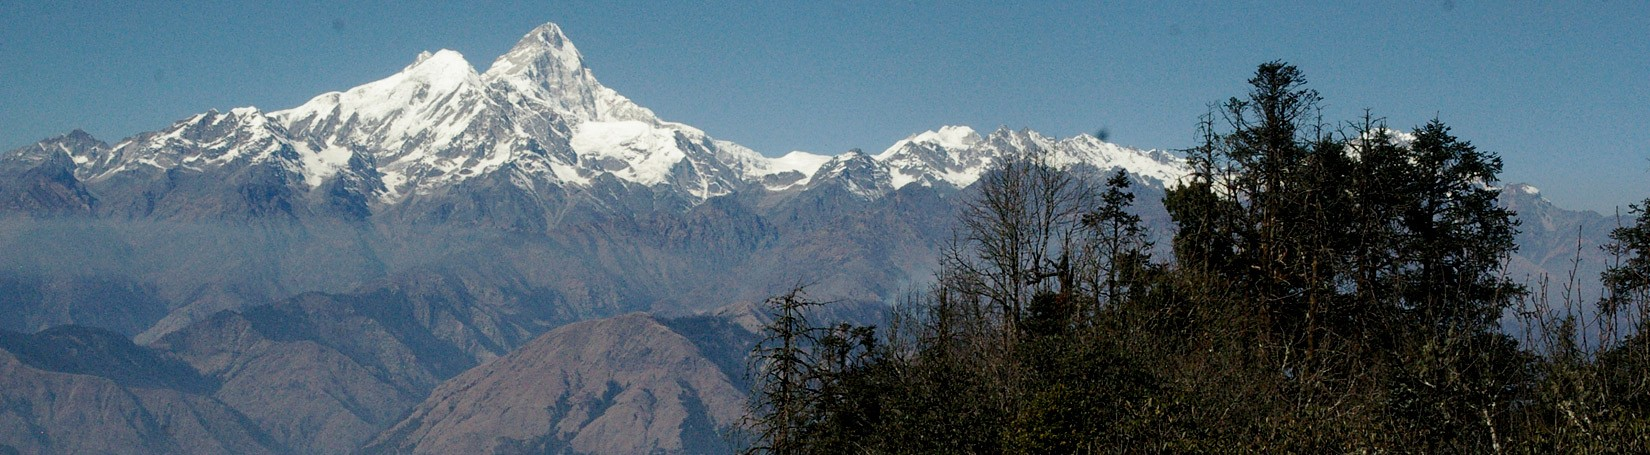 HImalayan Range seen from Phulkharka village after Hiking